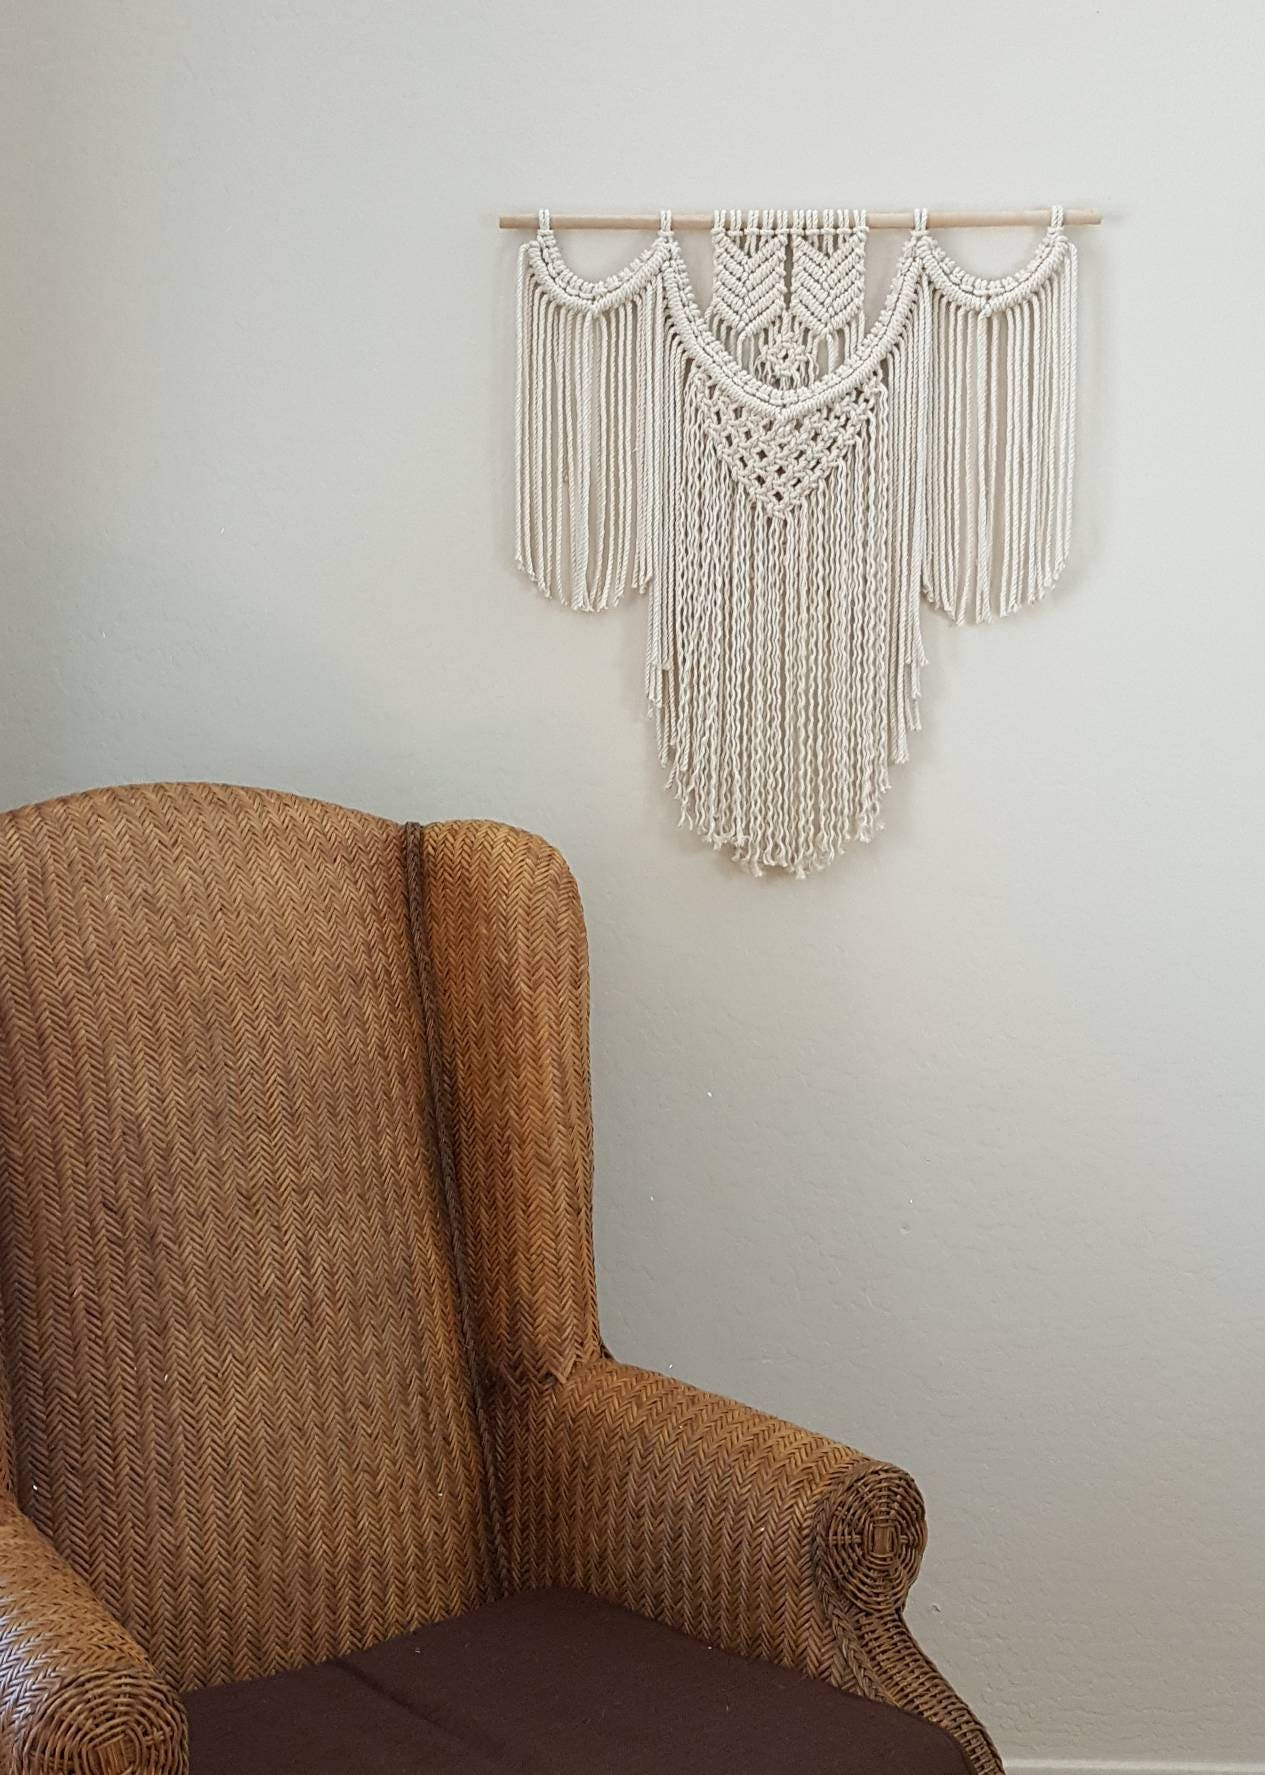 Cotton Macramé Wall Hanging, Piper. Tapestry/weaving/bohemian/wall Art.